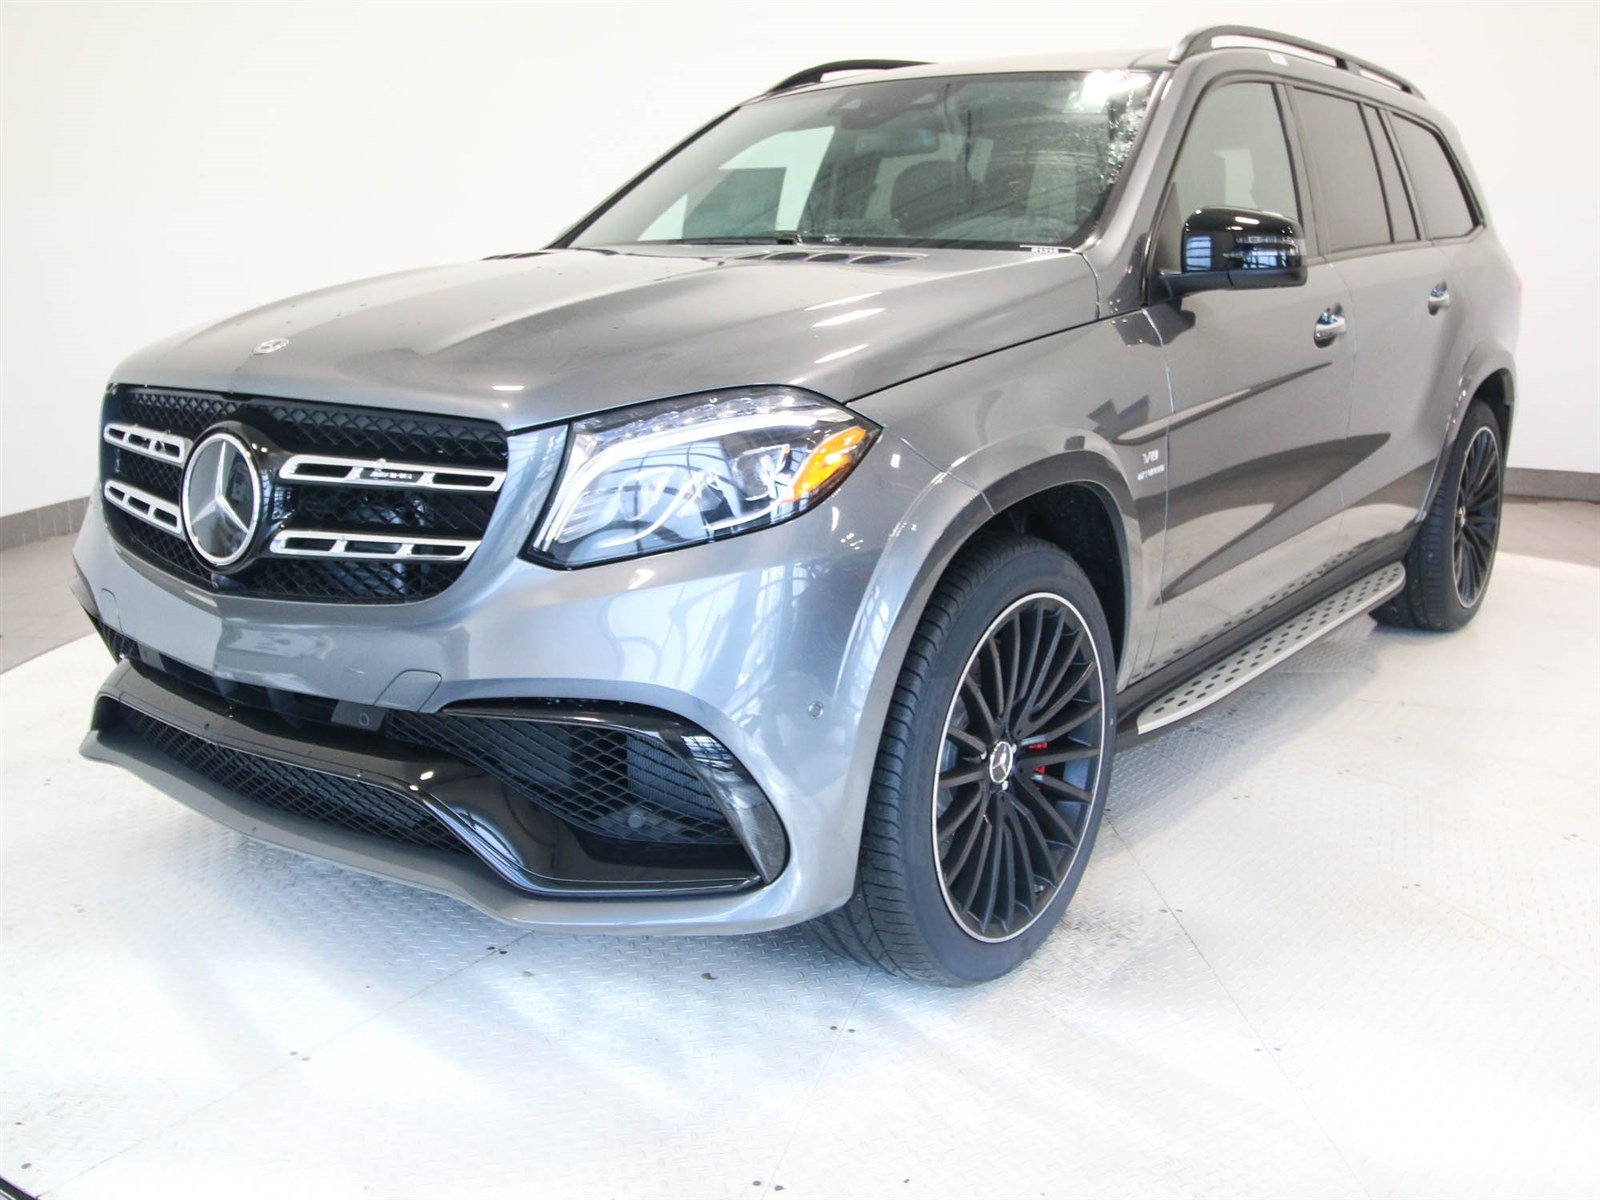 New 2018 mercedes benz gls gls 63 amg suv suv in fort for 2018 mercedes benz lineup